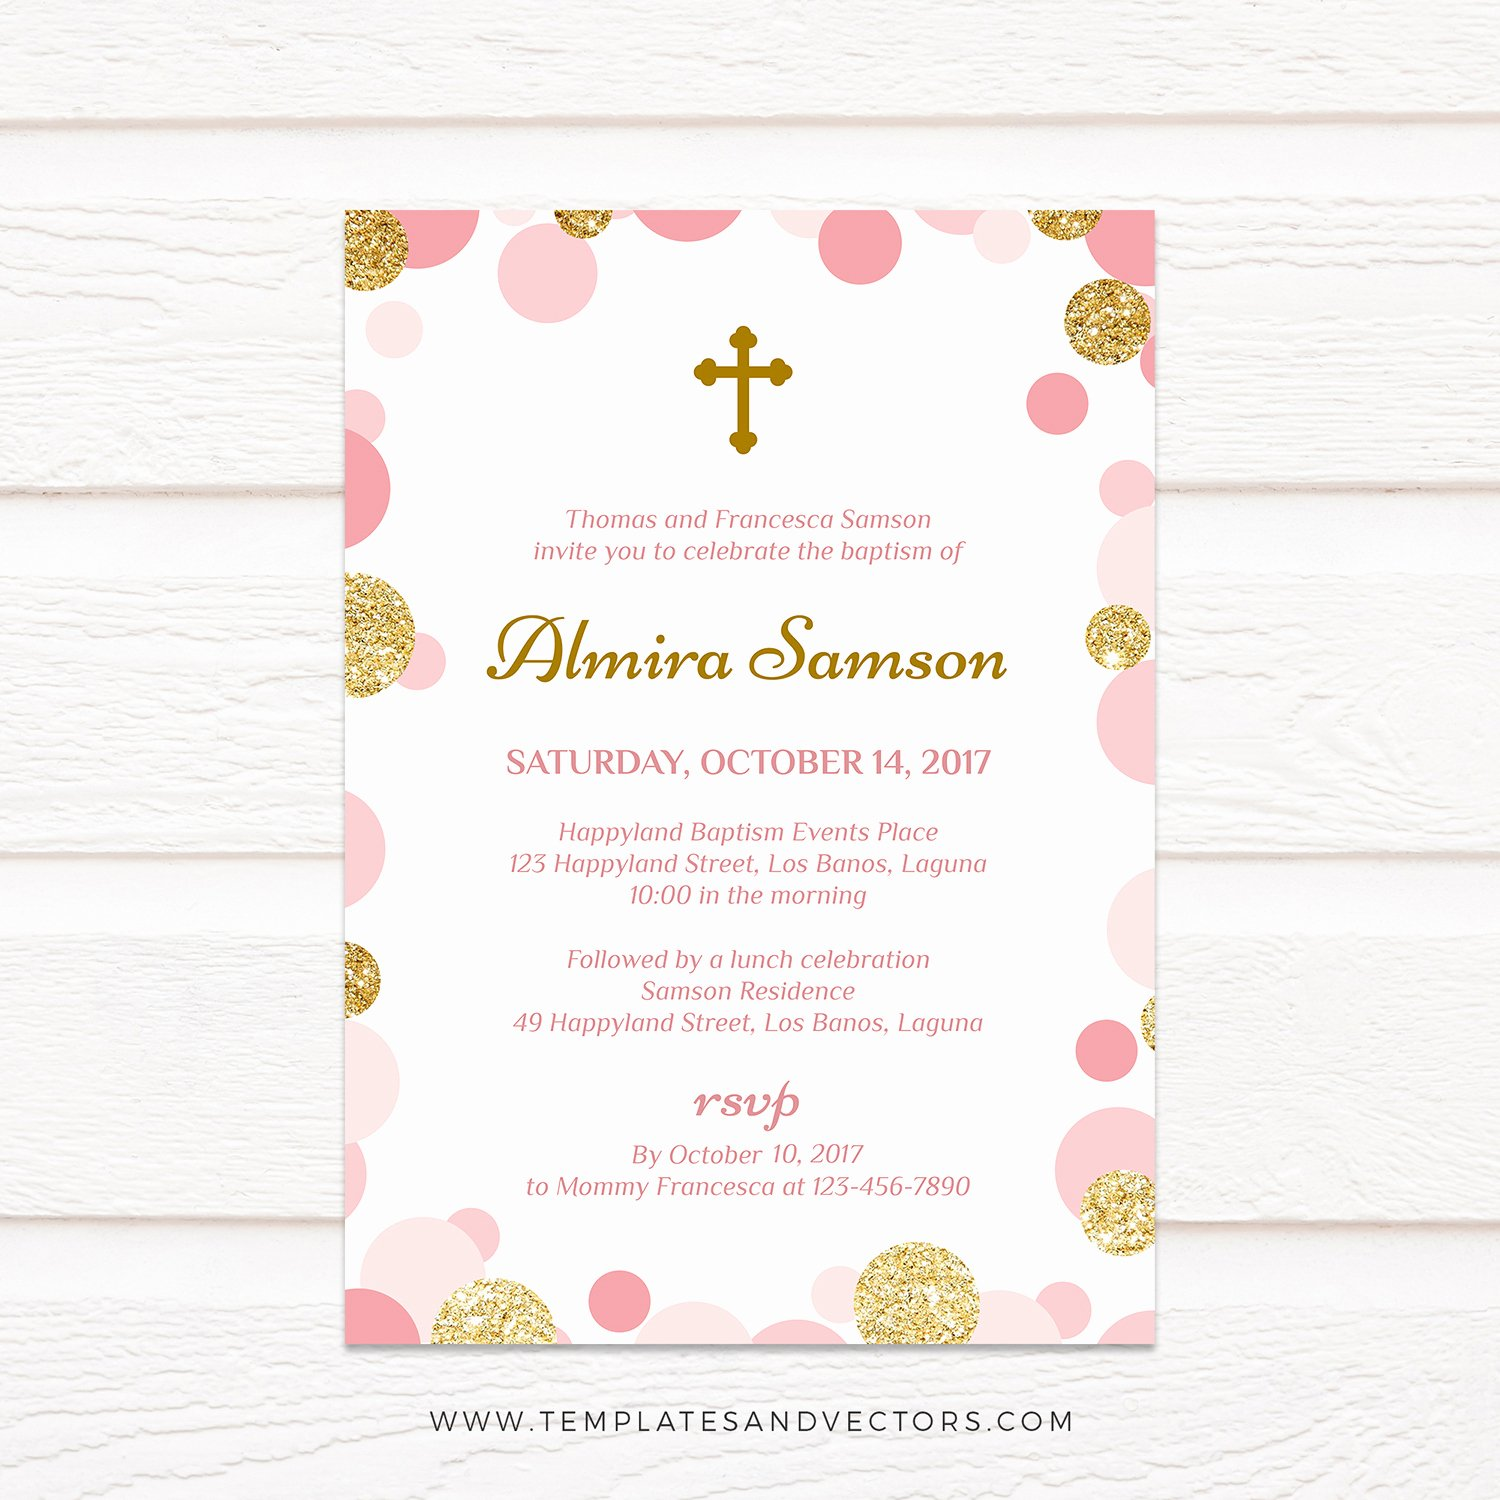 Pink and Gold Invitations Templates Lovely Tvc141 Pink and Gold Confetti Baptism Invitation Printable Template